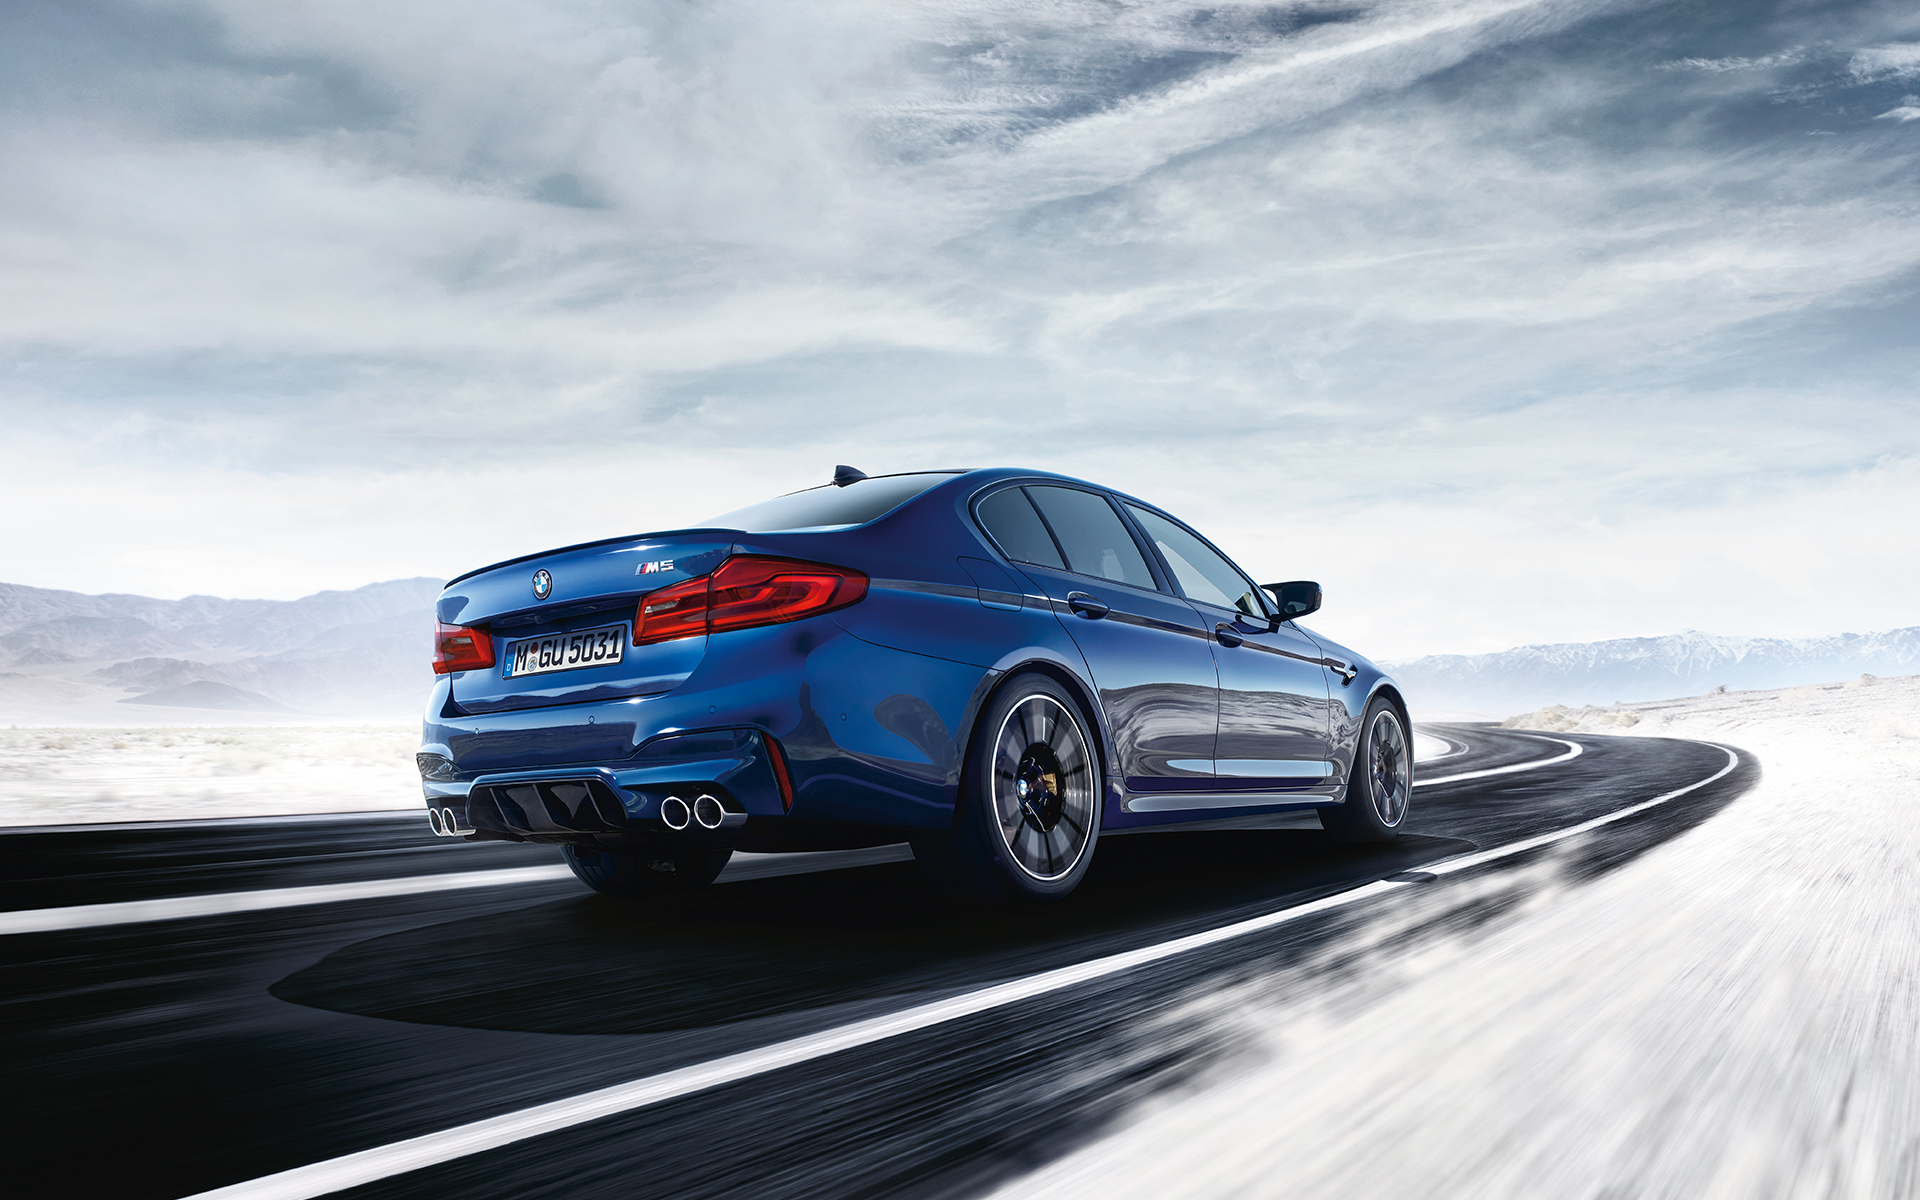 BMW M-Series M5 Sedan blue car: slippery surface performance